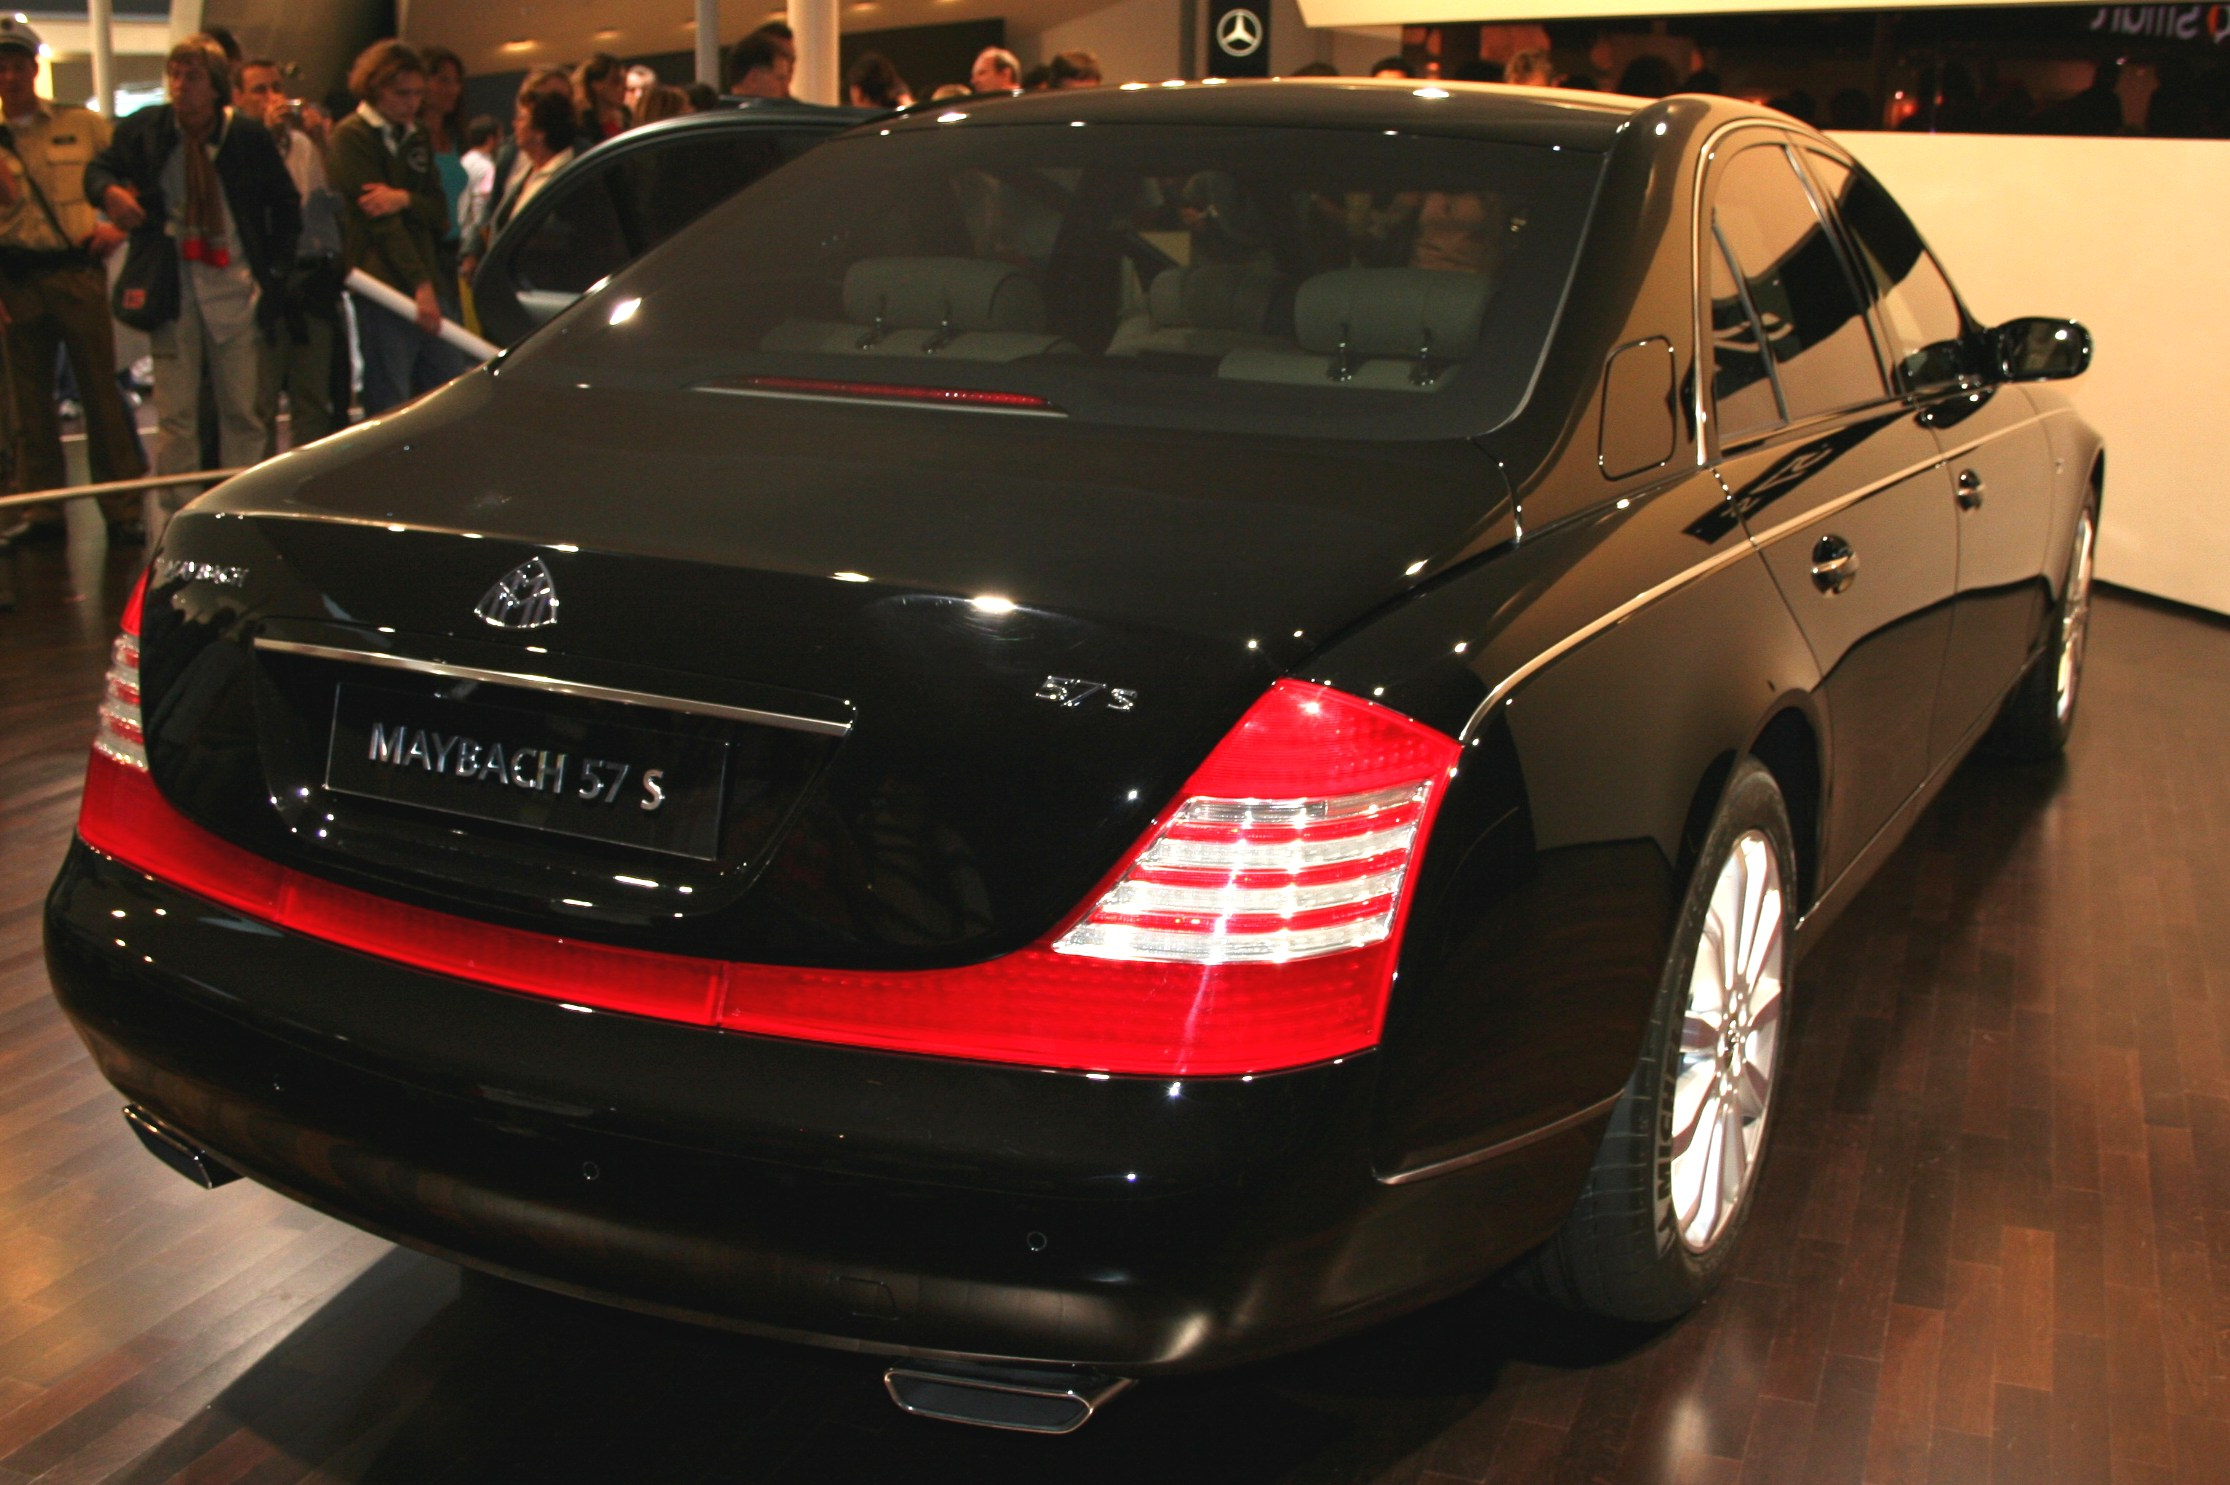 Maybach 57s photo - 3